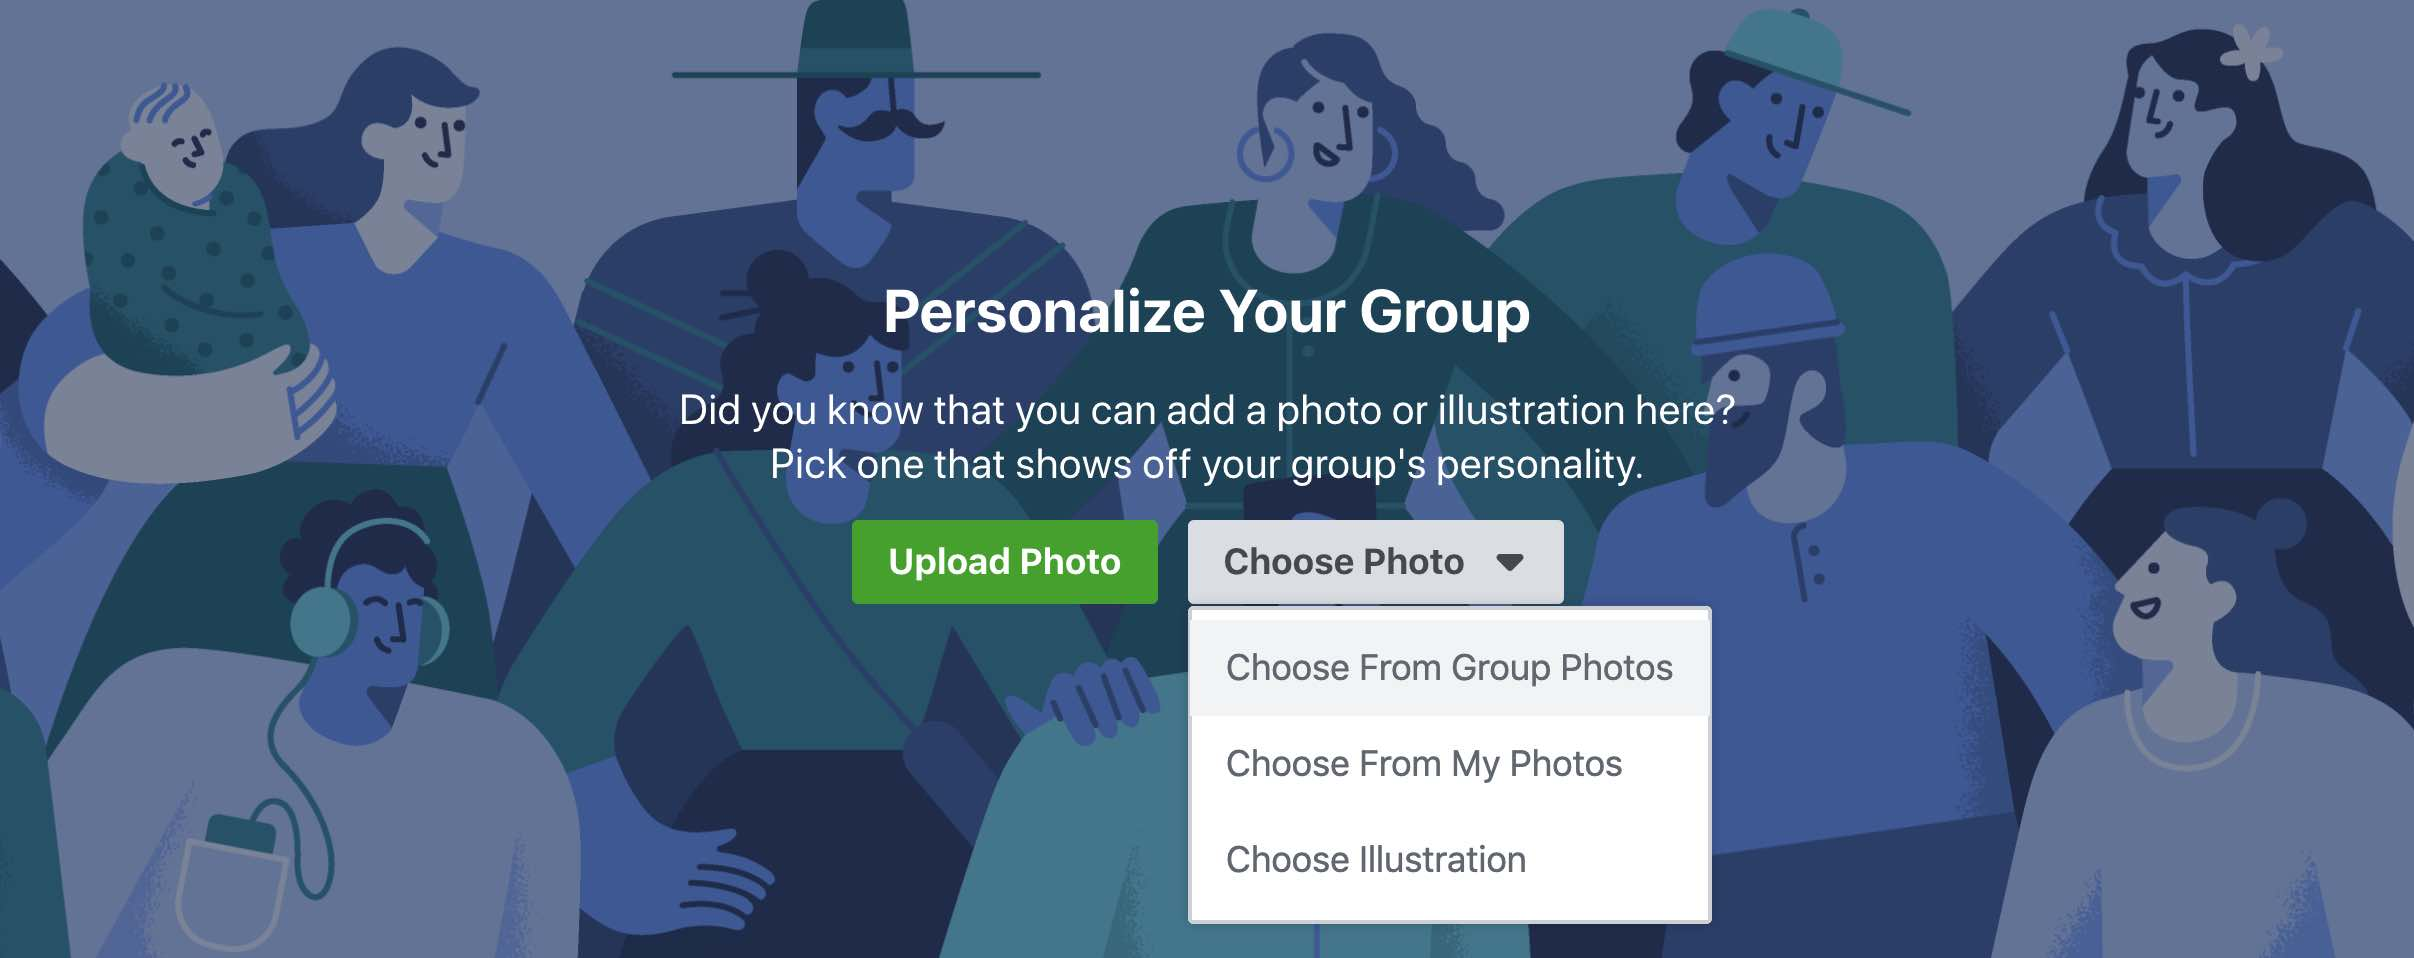 You'll want to choose a cover photo for your Facebook Group. You have the options to choose from group photos, which you won't have when you first create your group, an illustration created by Facebook, or photos from your own Facebook profile, your personal page. You can also upload a photo of your choice.